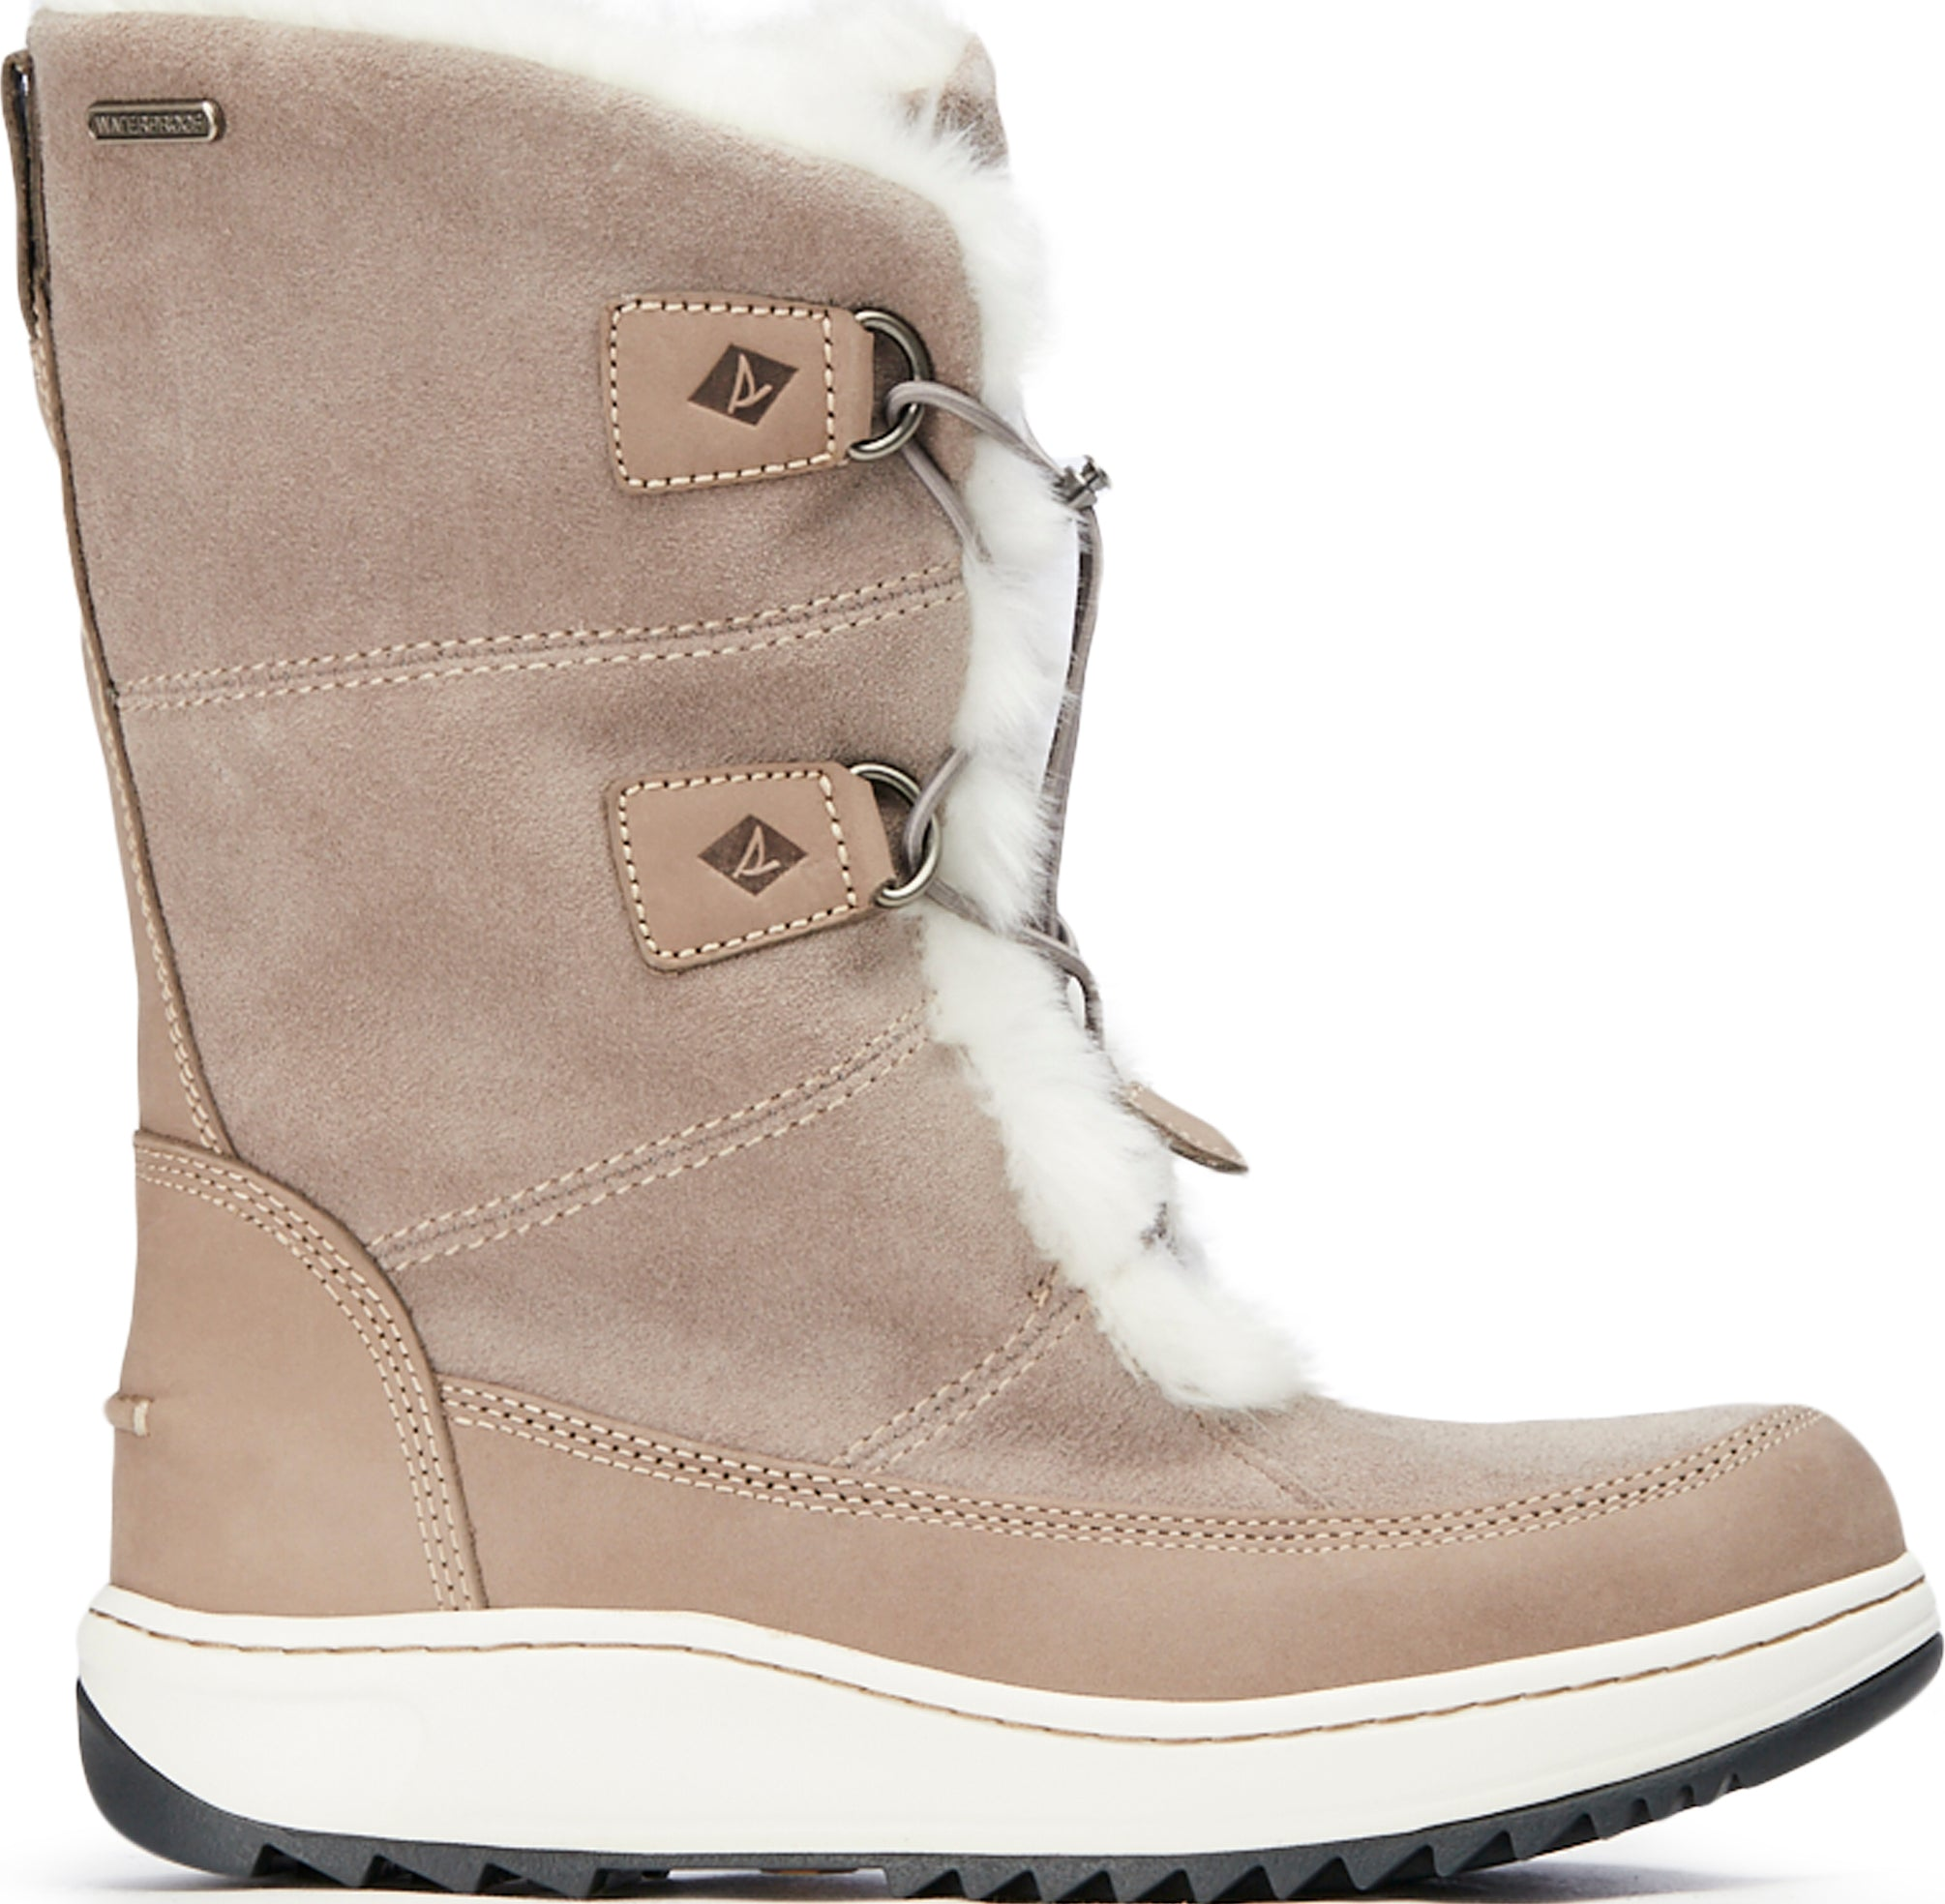 Sperry Top Sider Powder Valley with